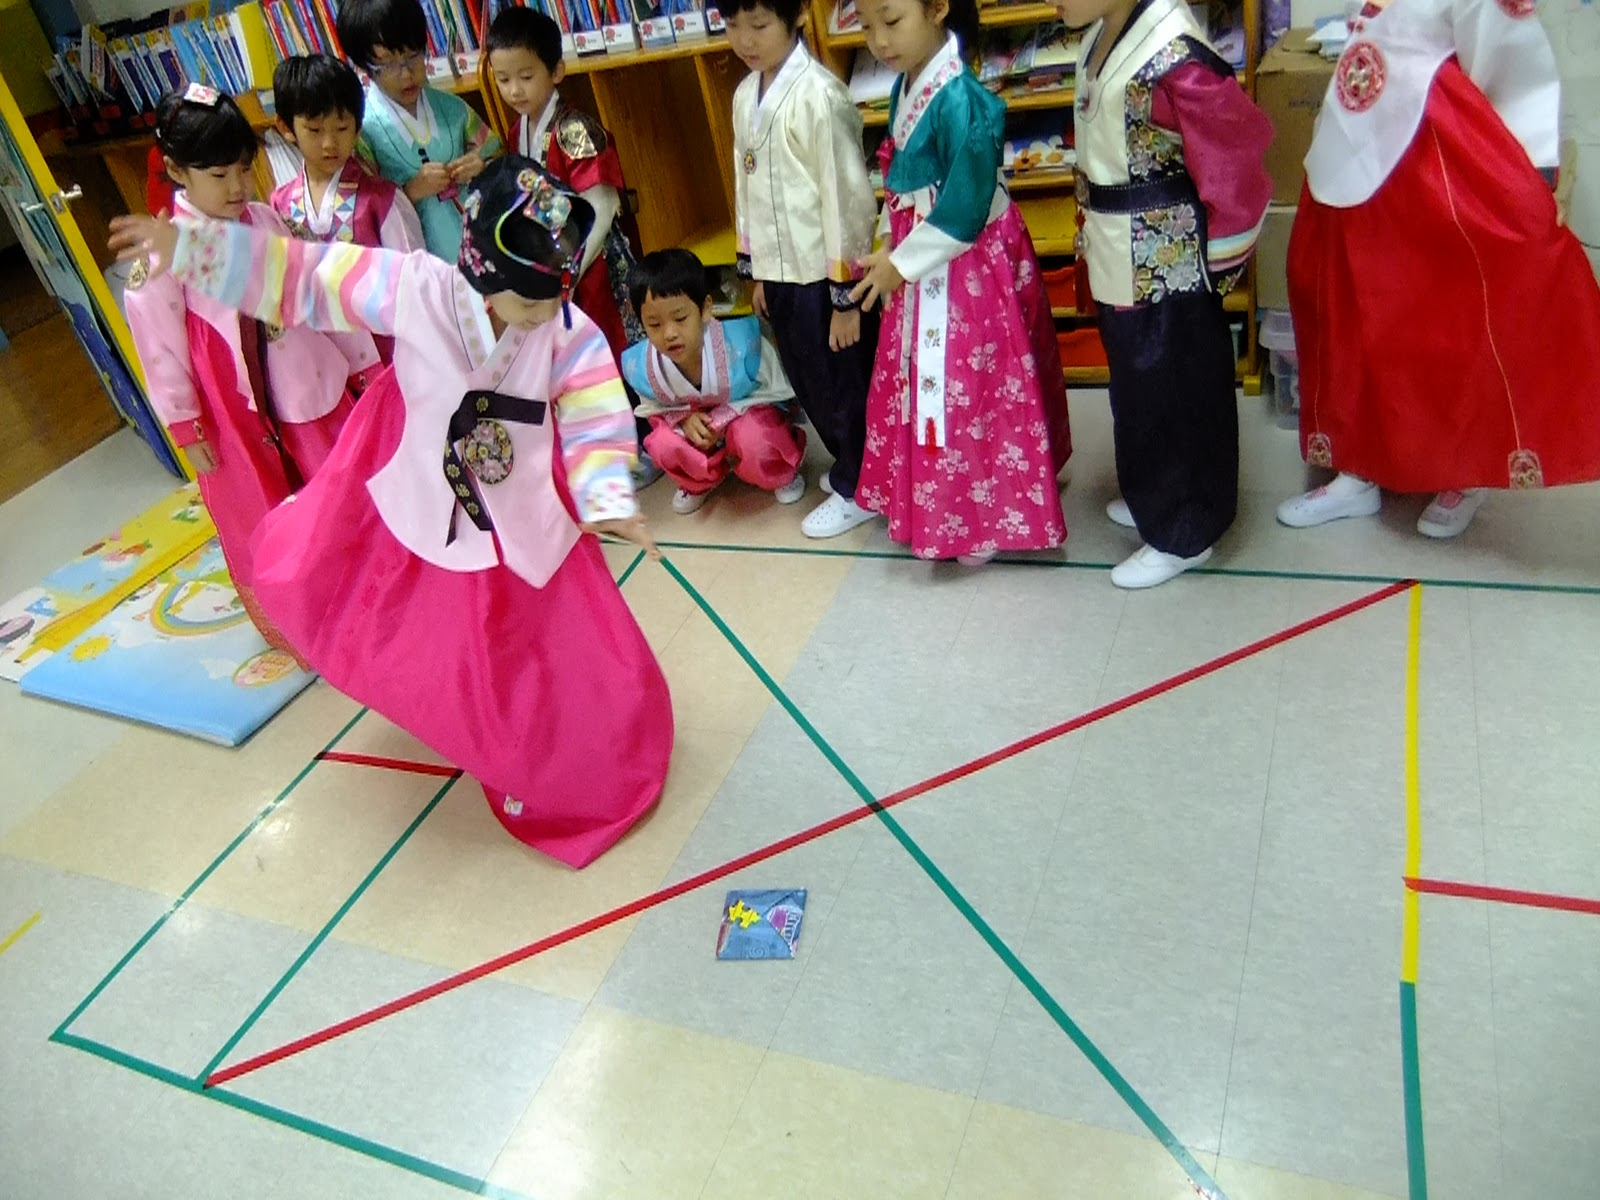 Playing traditional games: Korean hopscotch